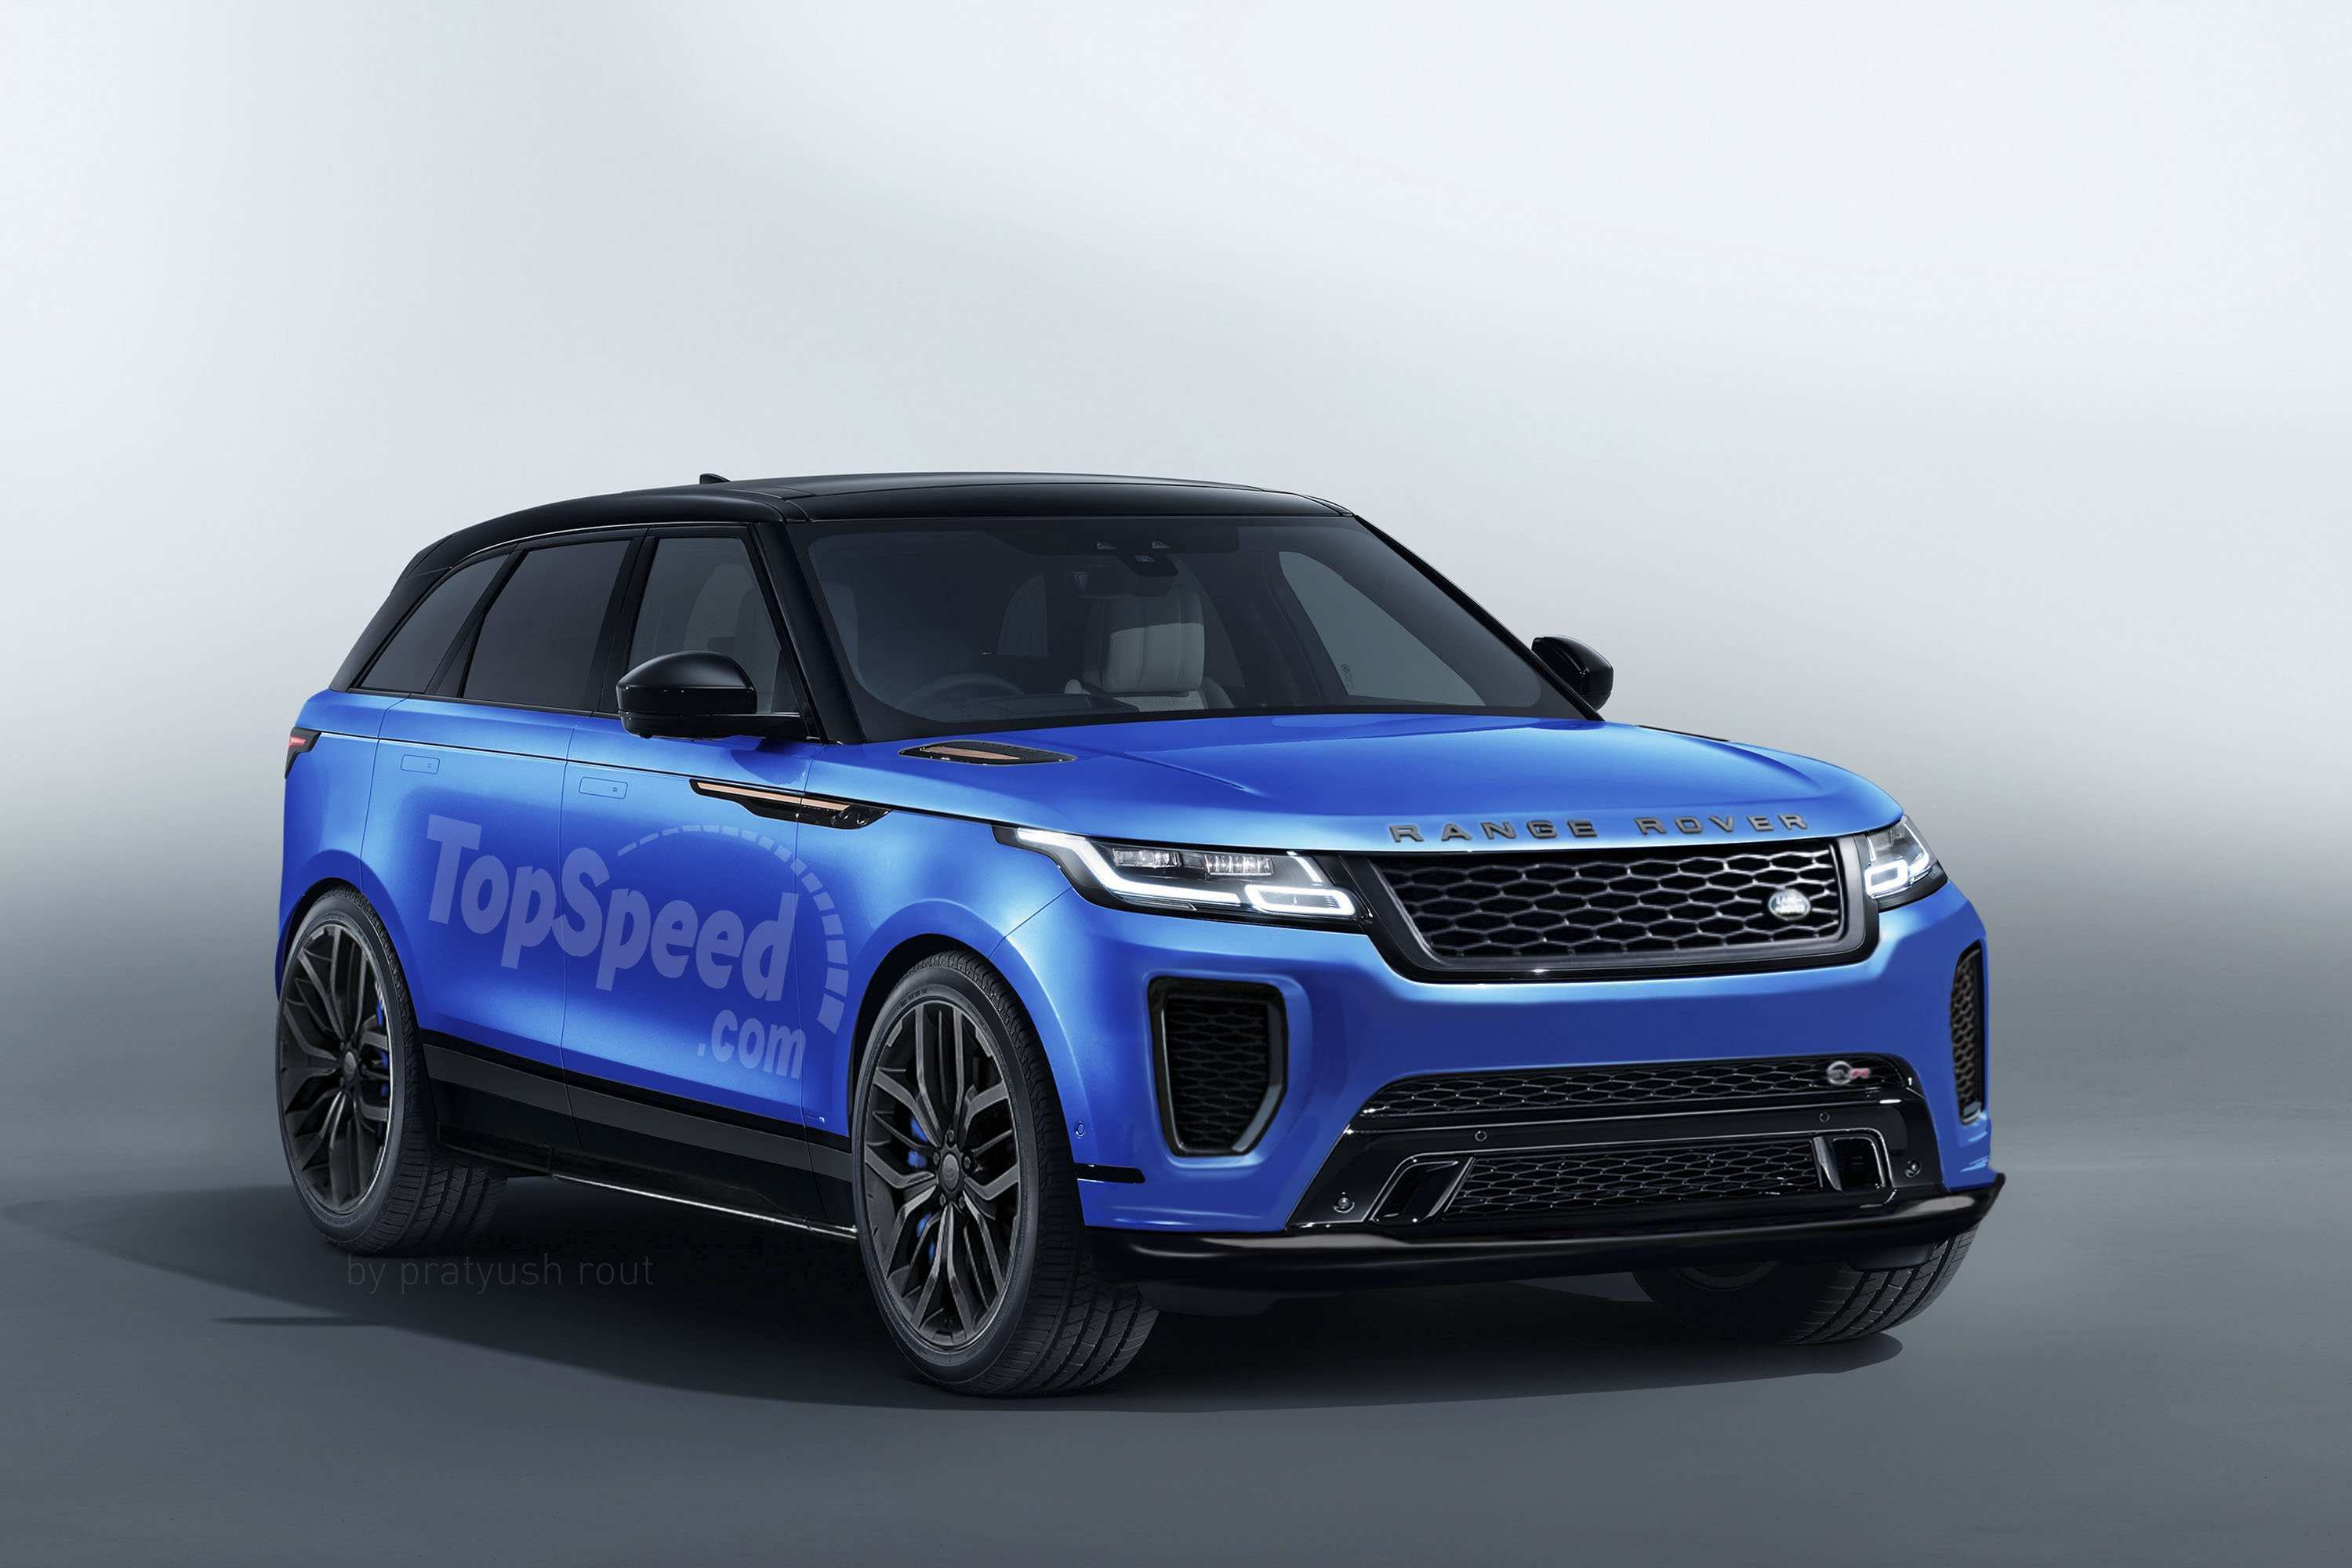 89 Great New Land Rover 2019 Pricing for New Land Rover 2019